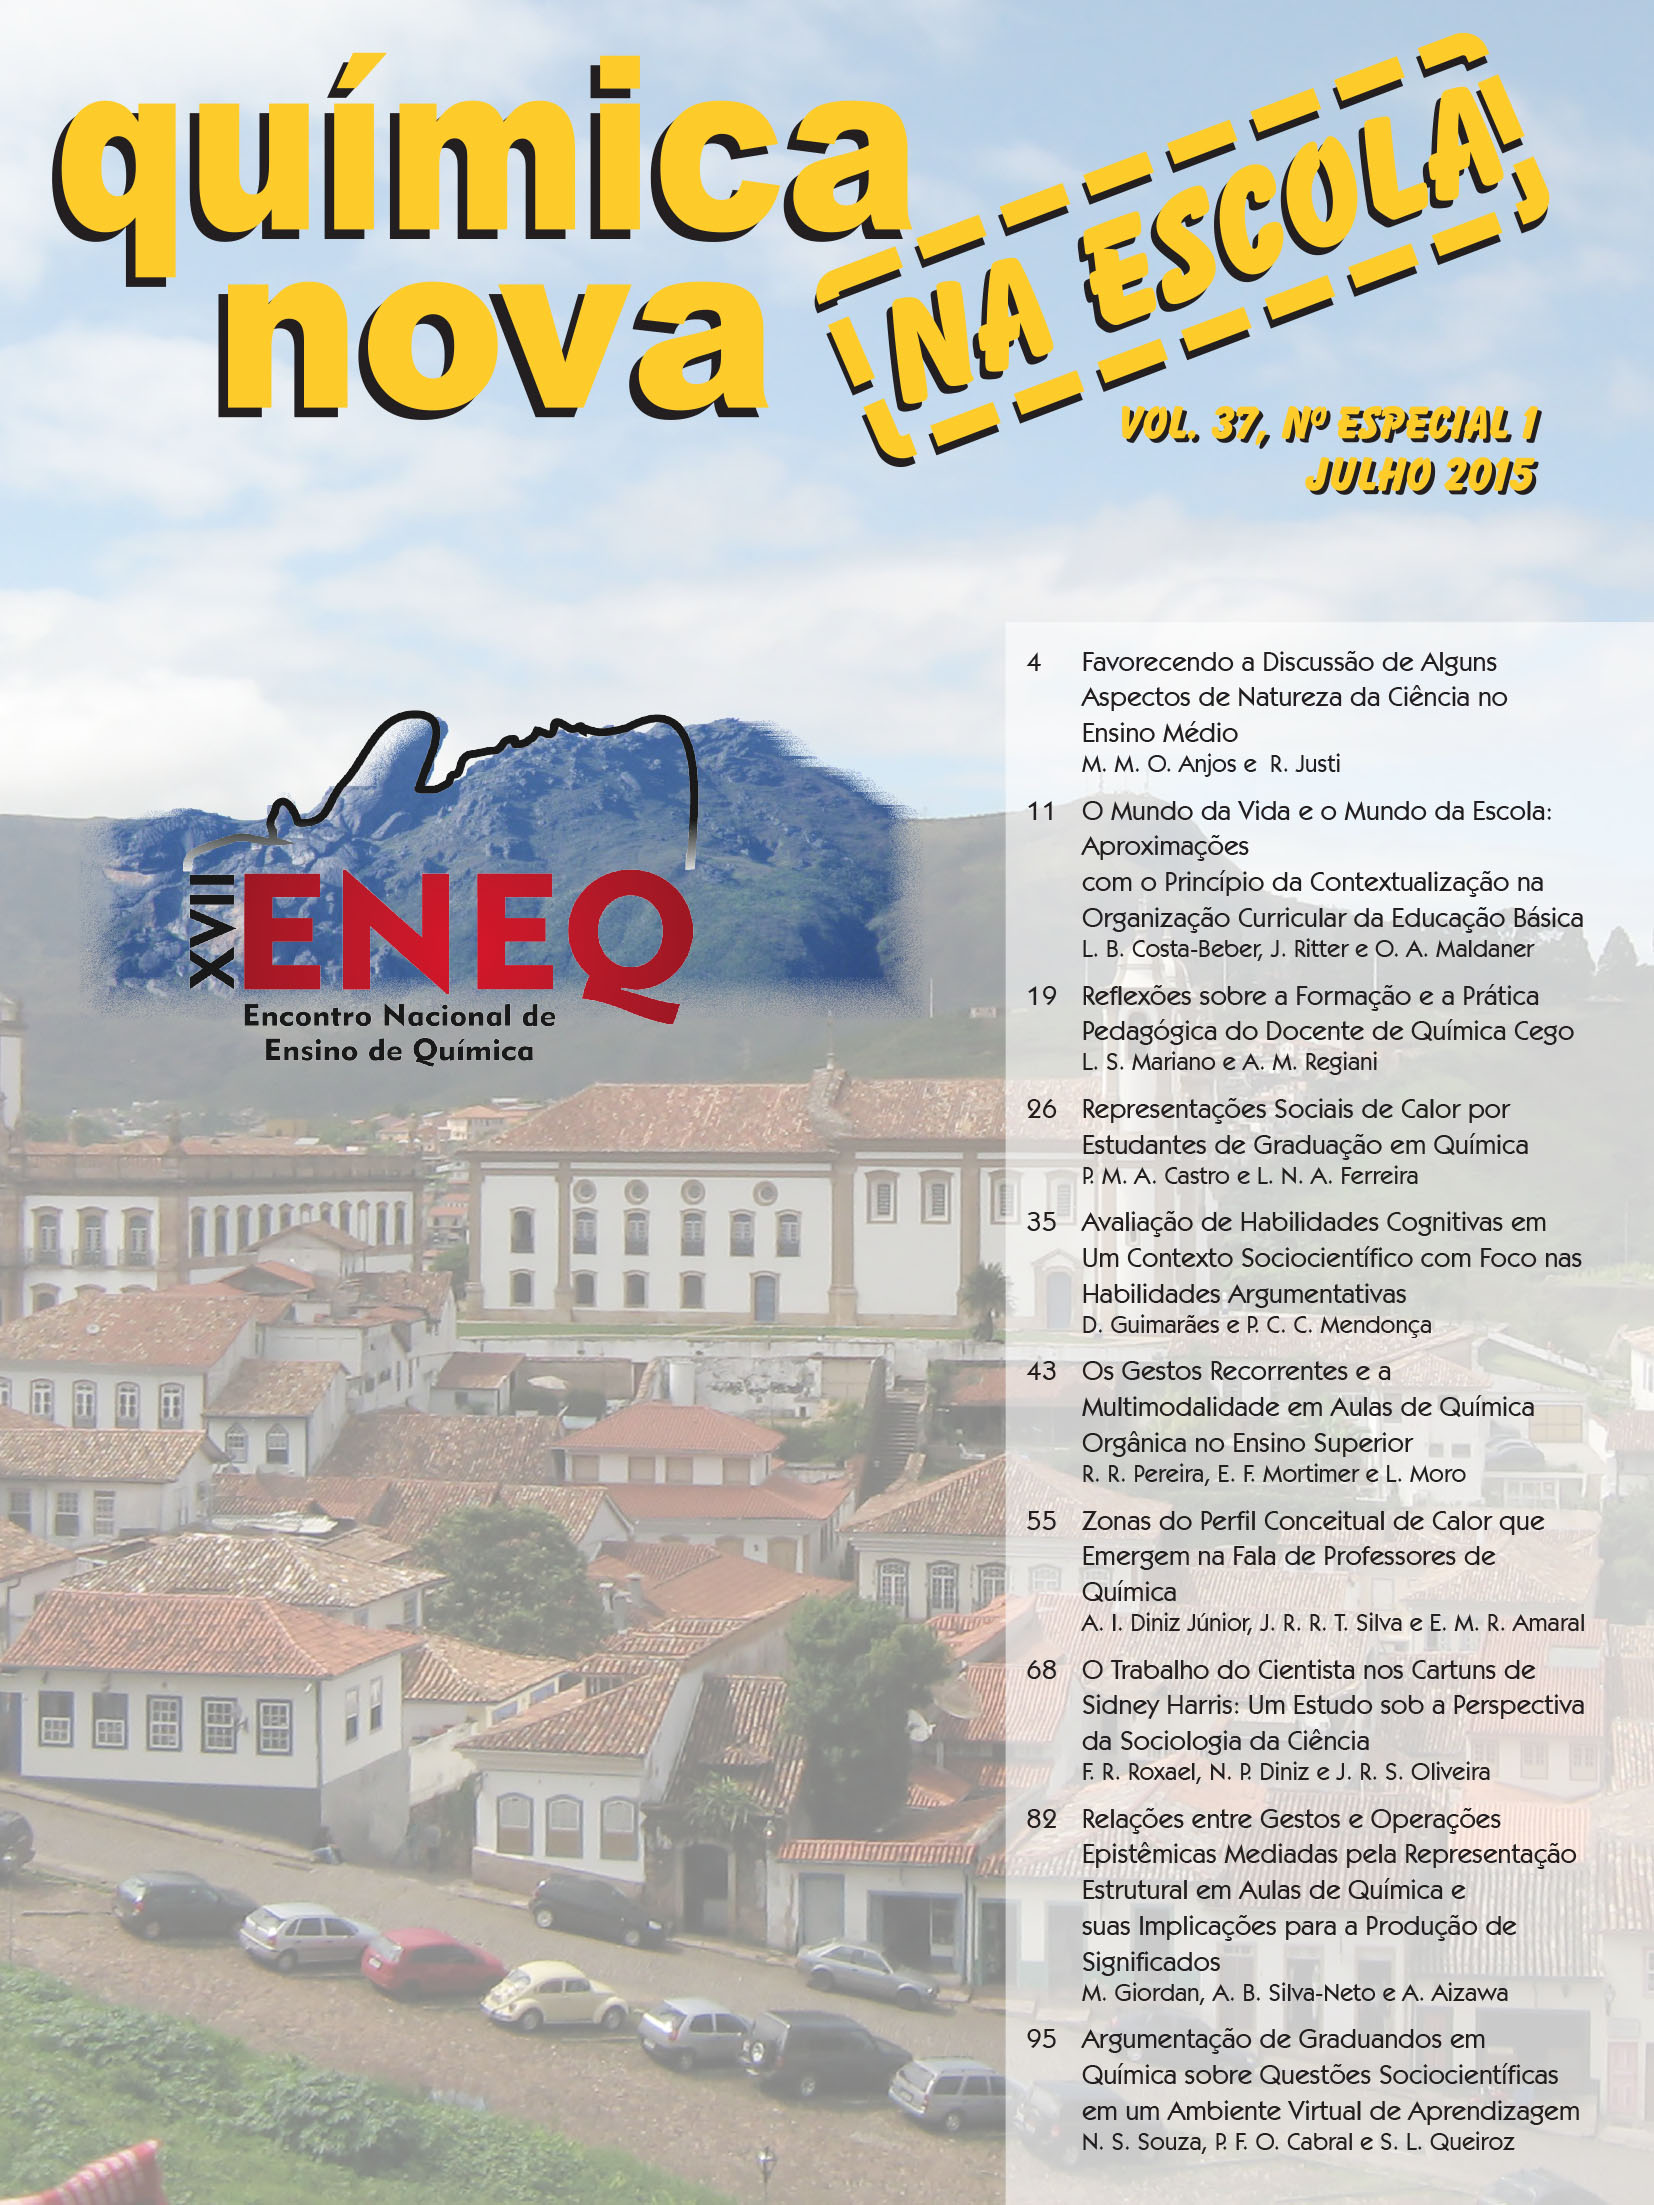 QNEsc Vol. 37 N<sup><u>o</u></sup> especial 1(exclusivamente on-line)